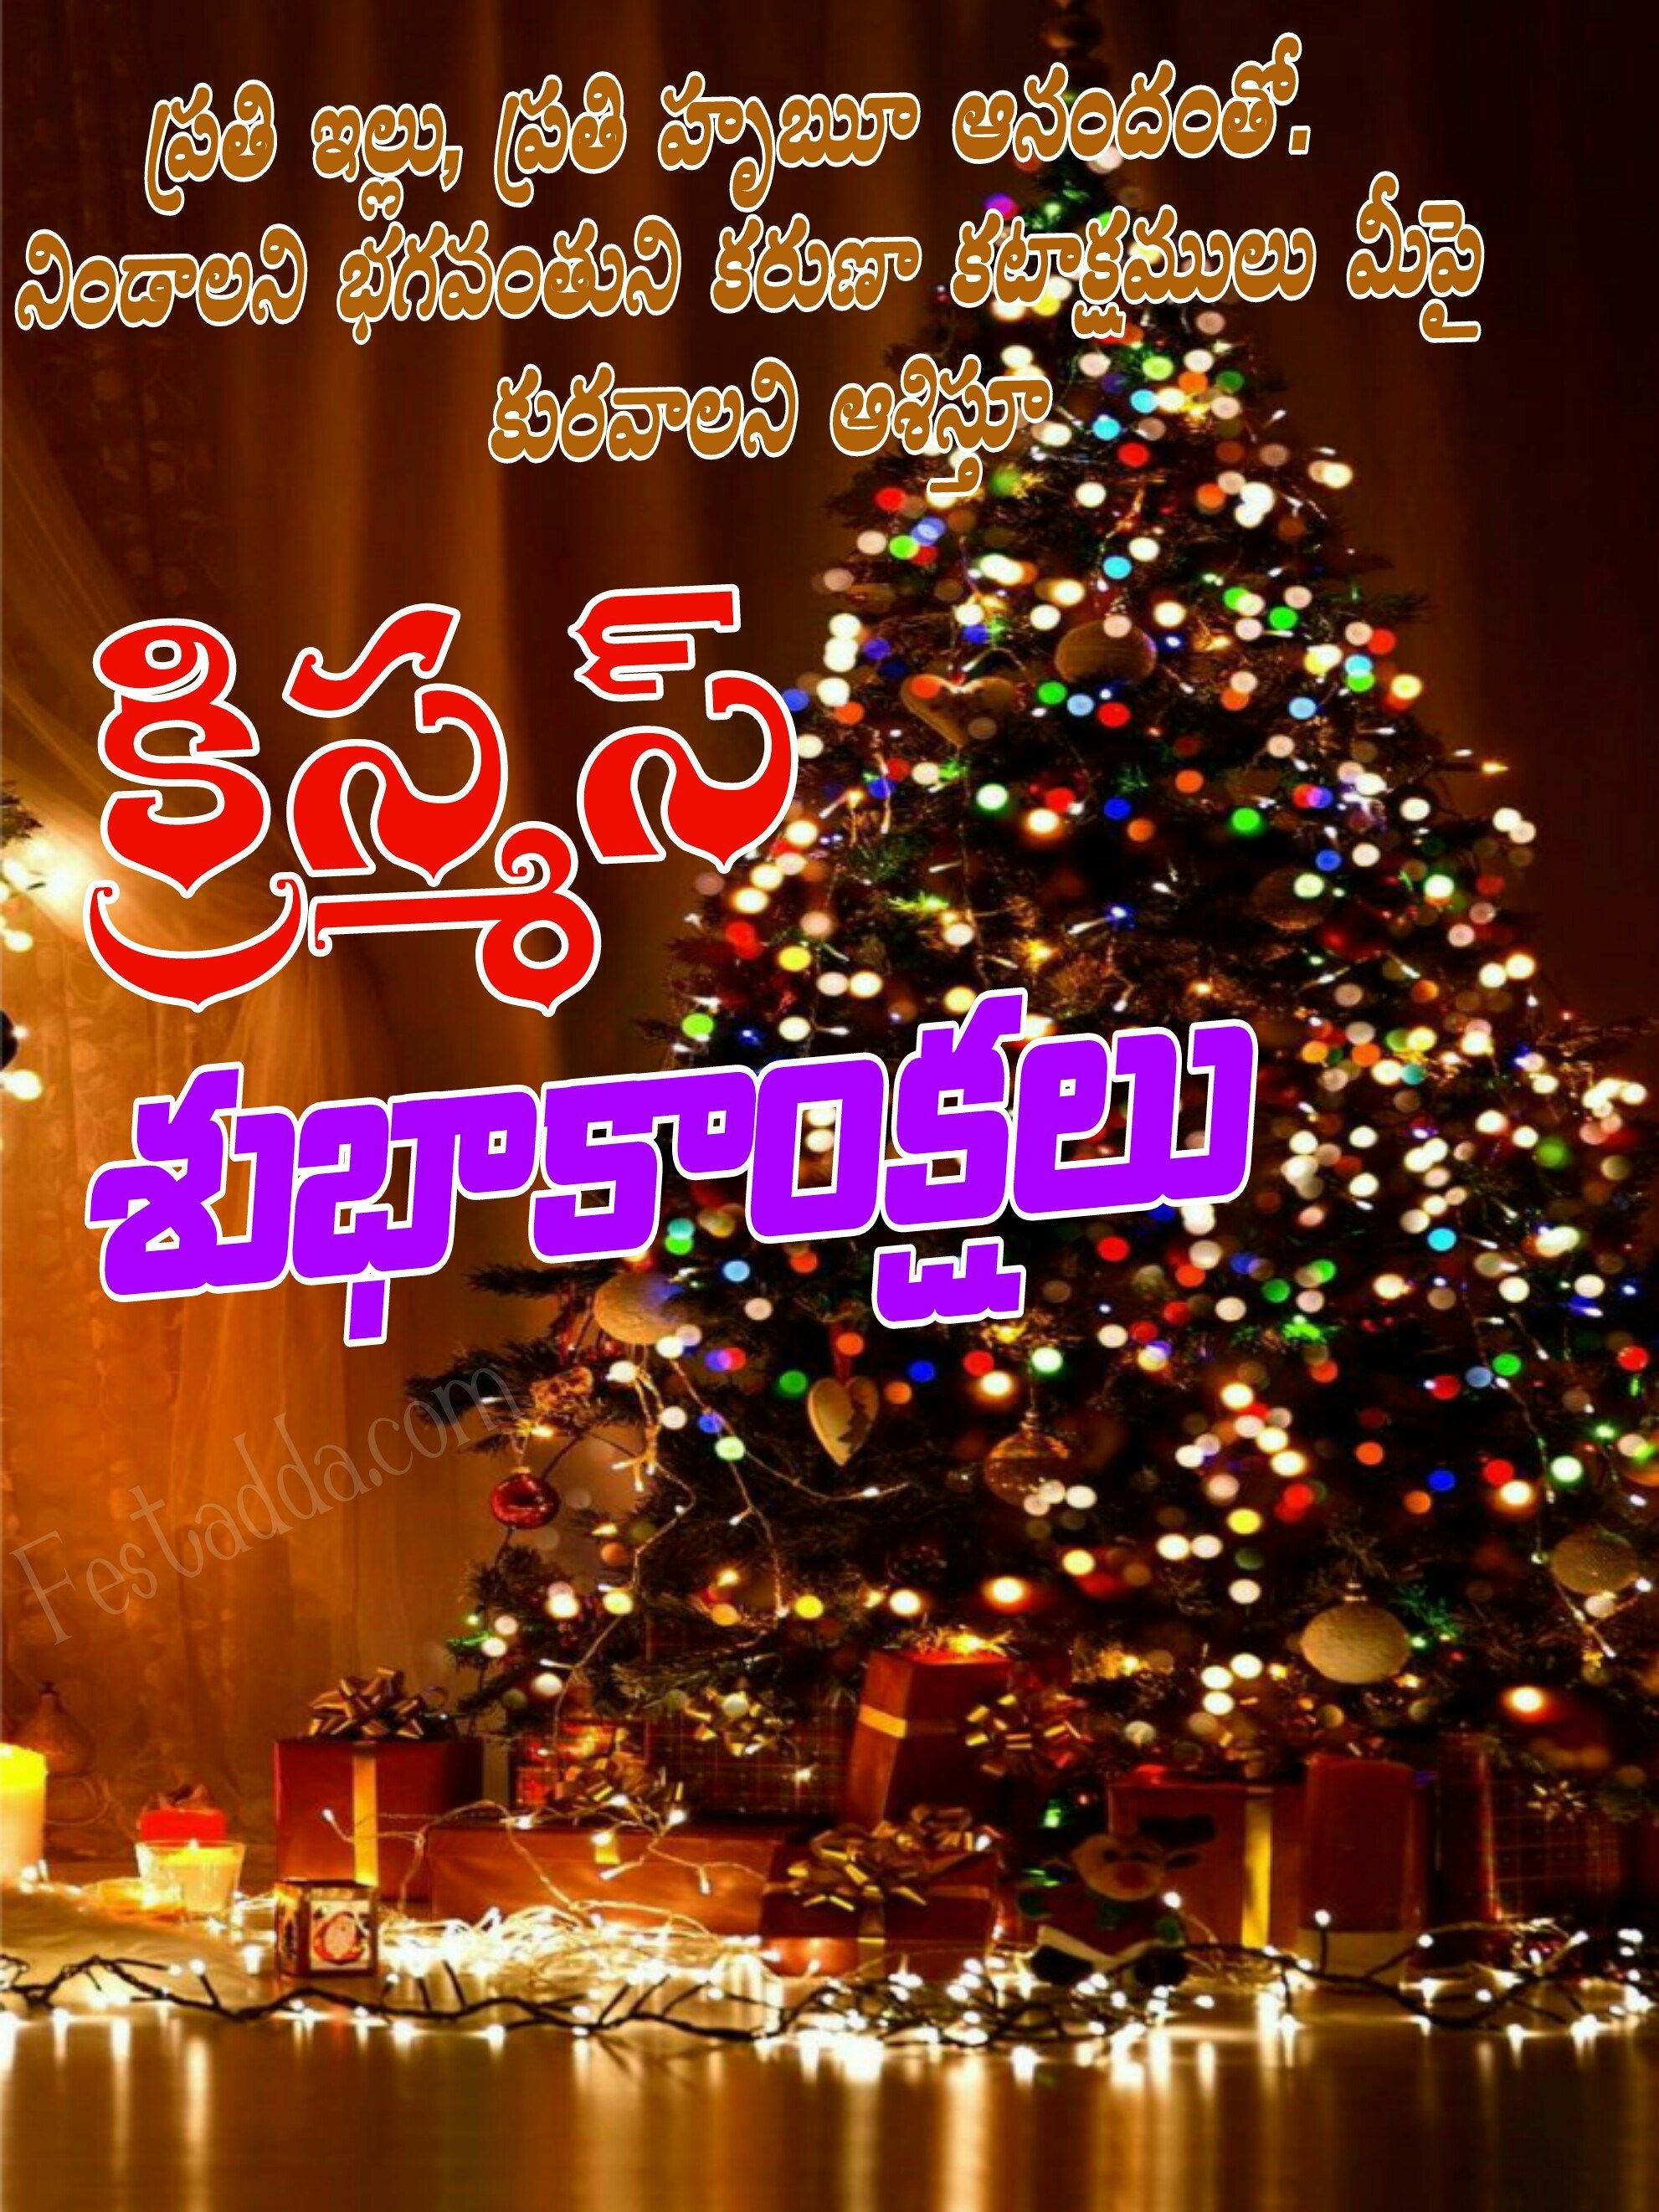 Download Merry Christmas Images Hd Merry Christmas Images